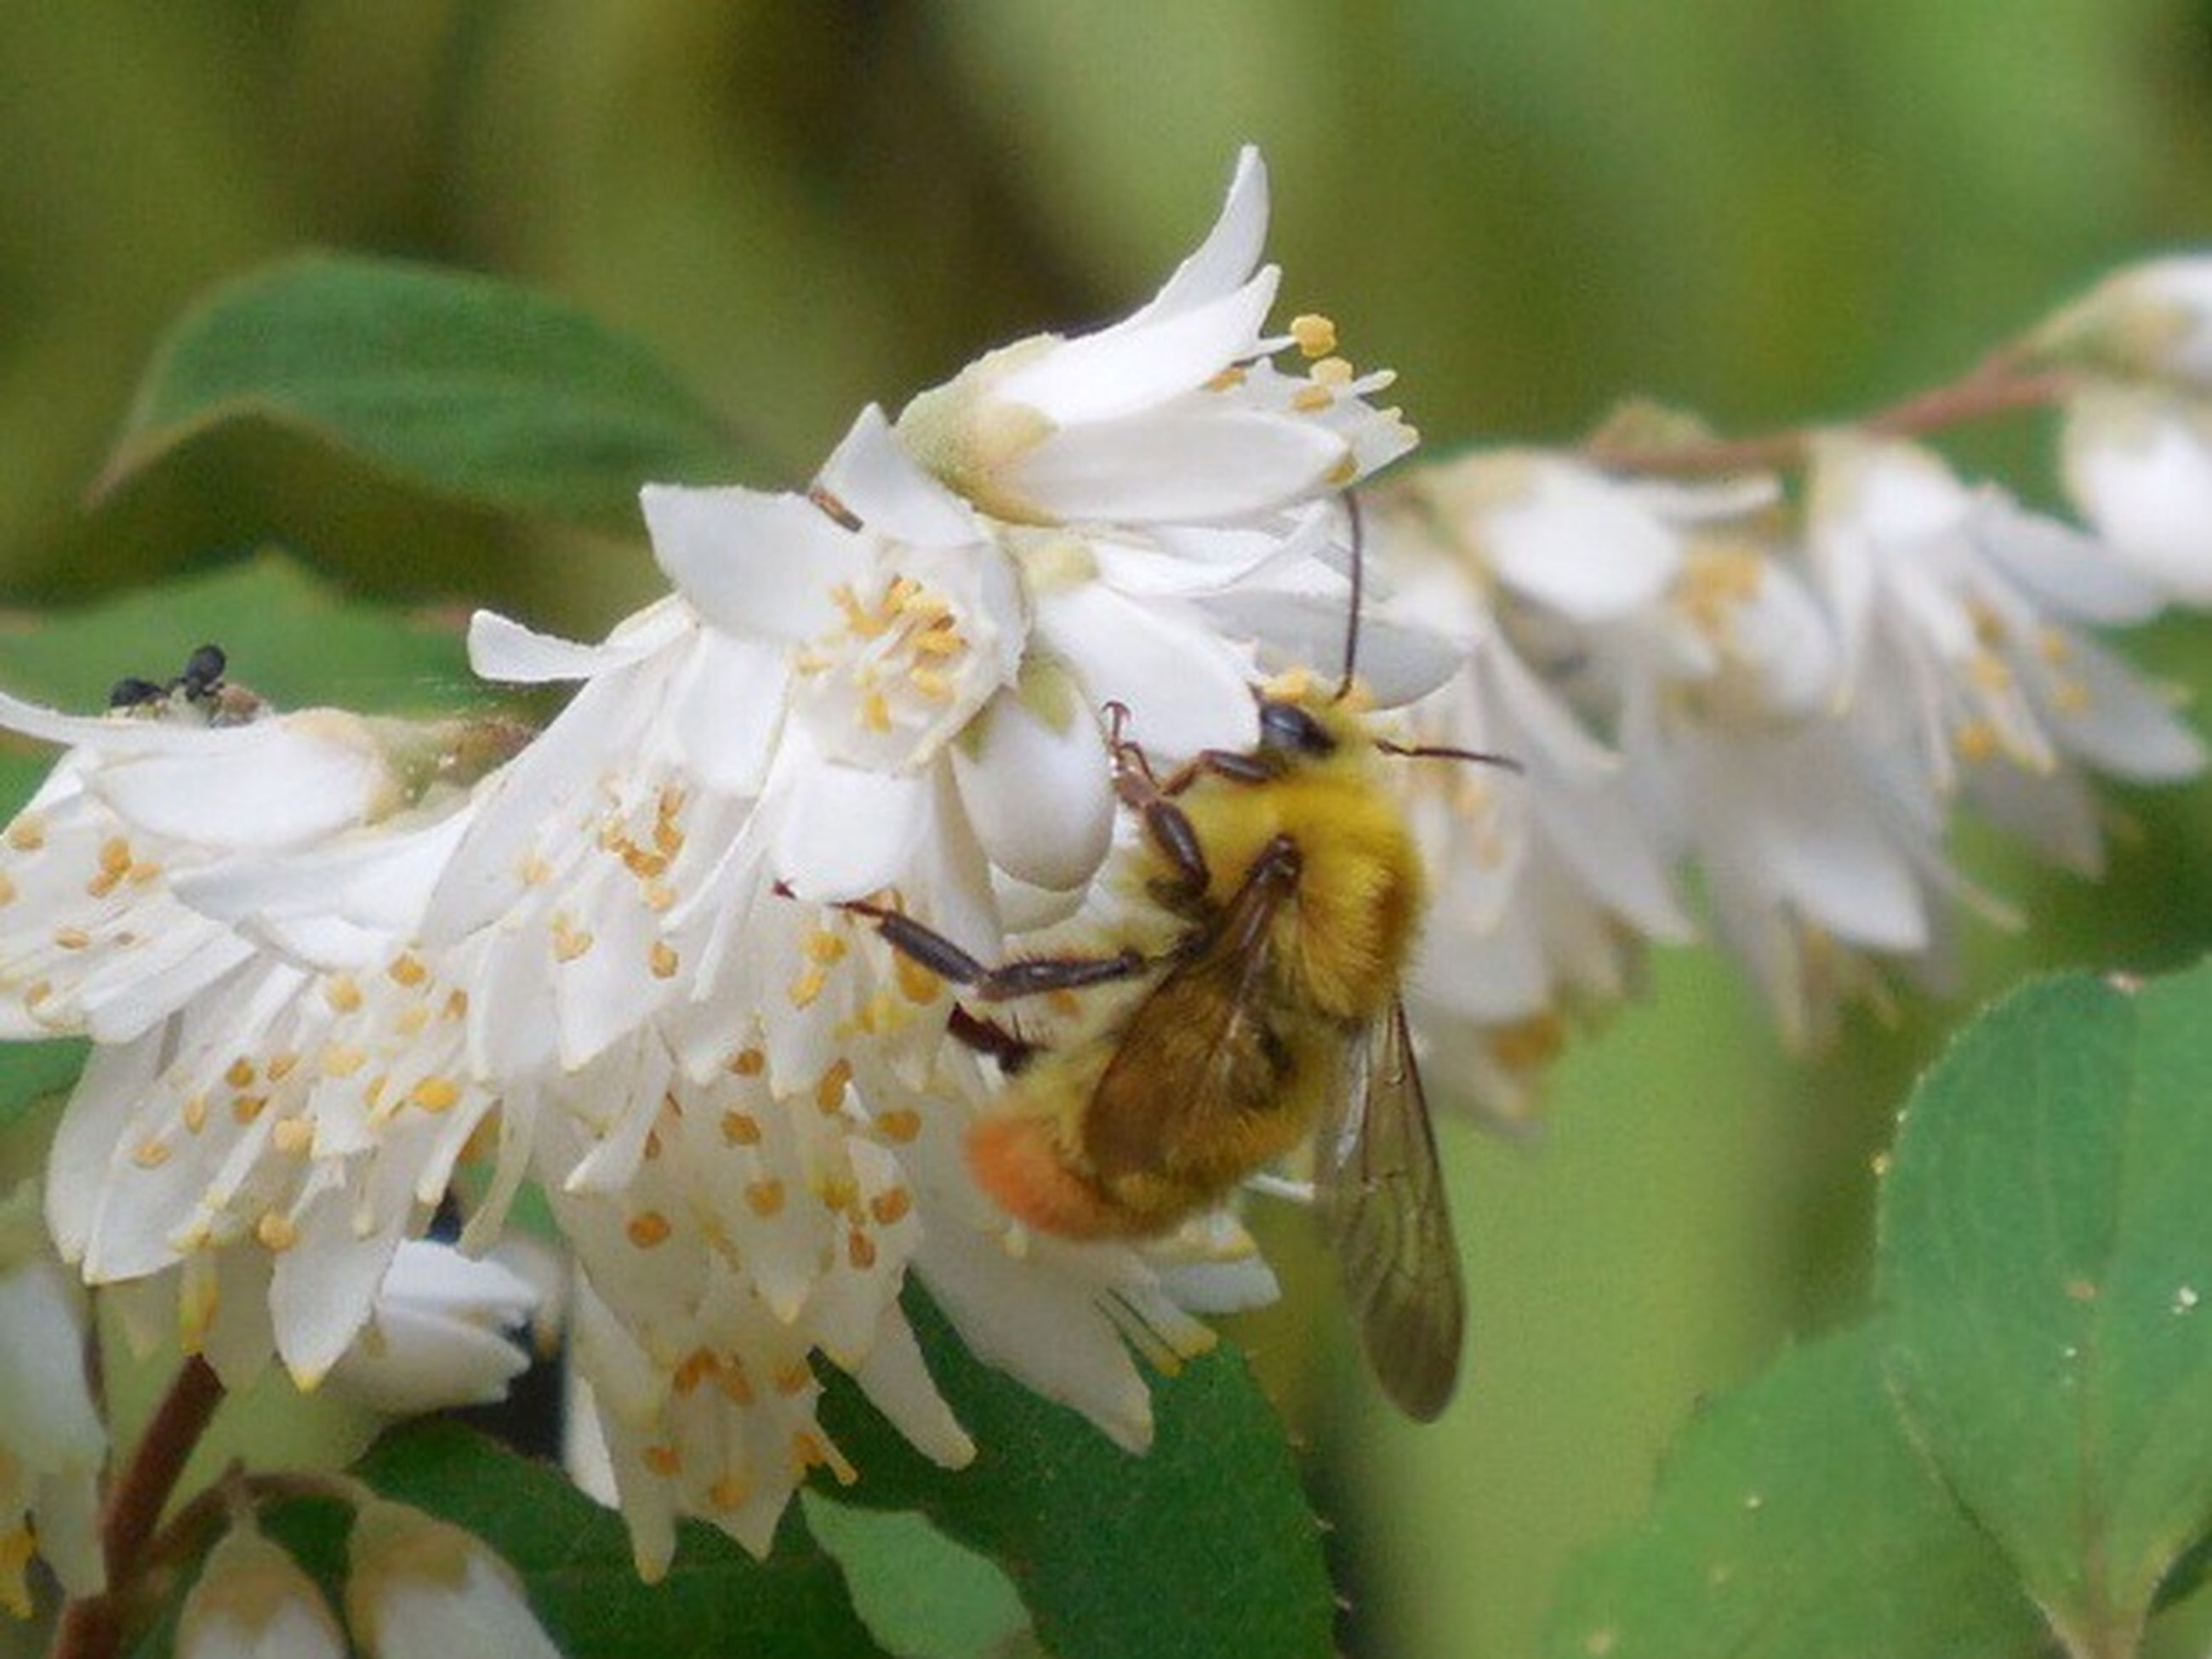 animal themes, animals in the wild, flower, wildlife, one animal, insect, white color, bee, freshness, pollination, growth, nature, fragility, petal, beauty in nature, close-up, focus on foreground, honey bee, selective focus, outdoors